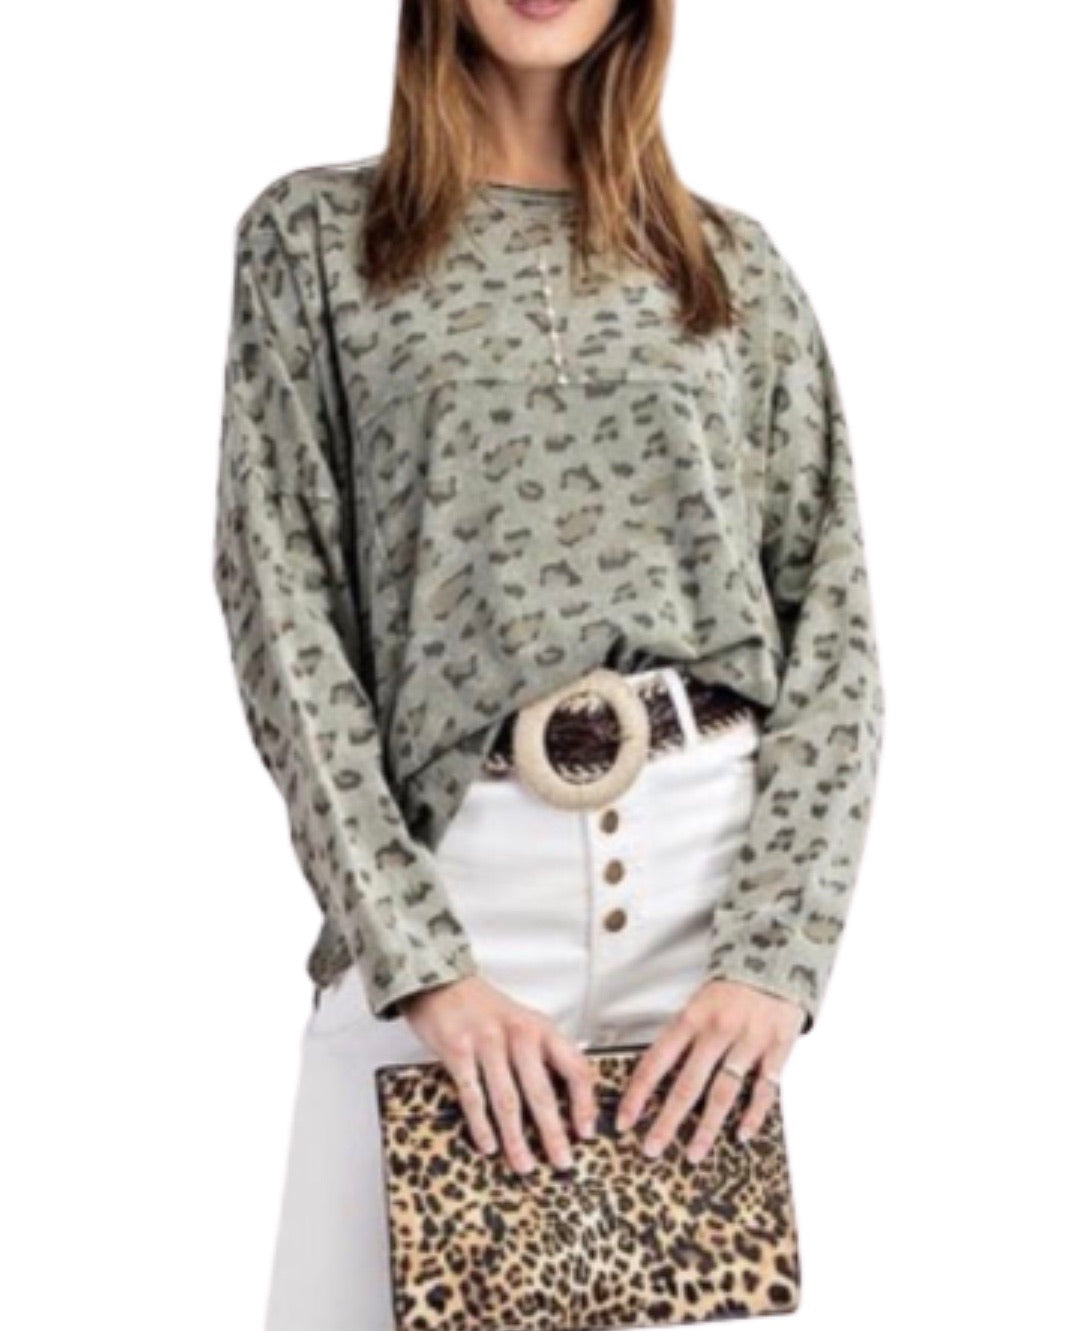 New ! Shannae Faded Olive Leopard Print Top - Glamco Boutique